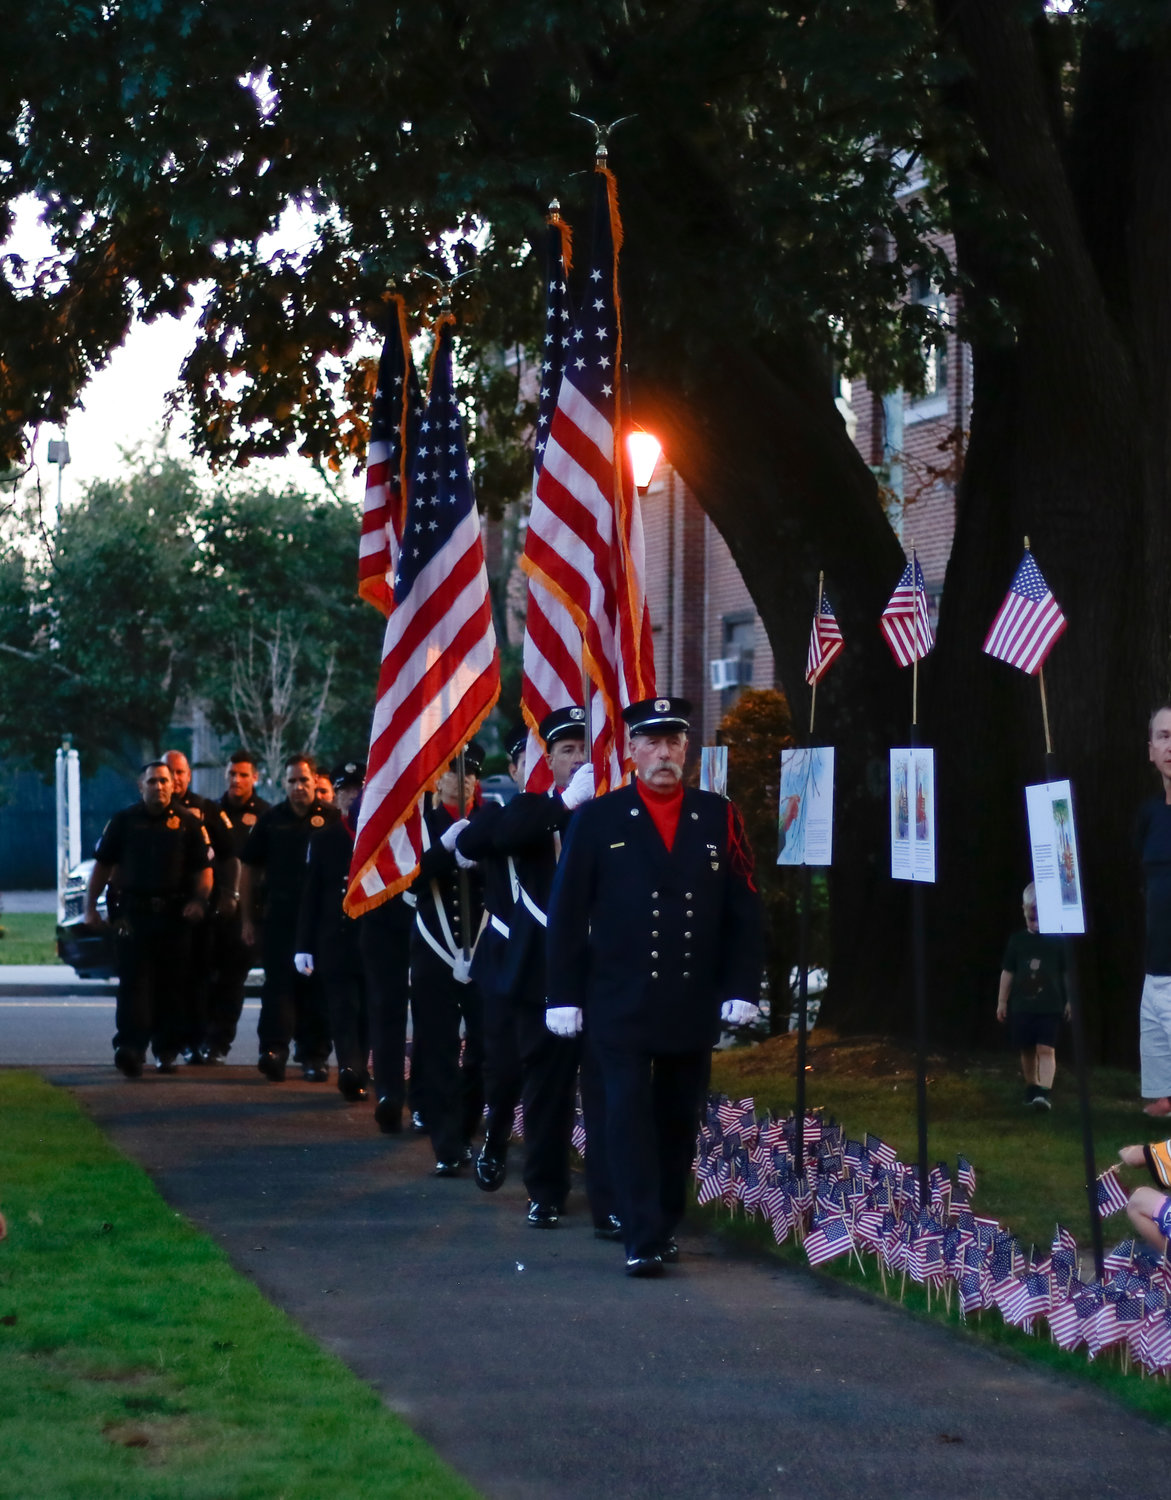 The RVC fire dept. color guard led the procession into the park followed by police officers and firefighters.